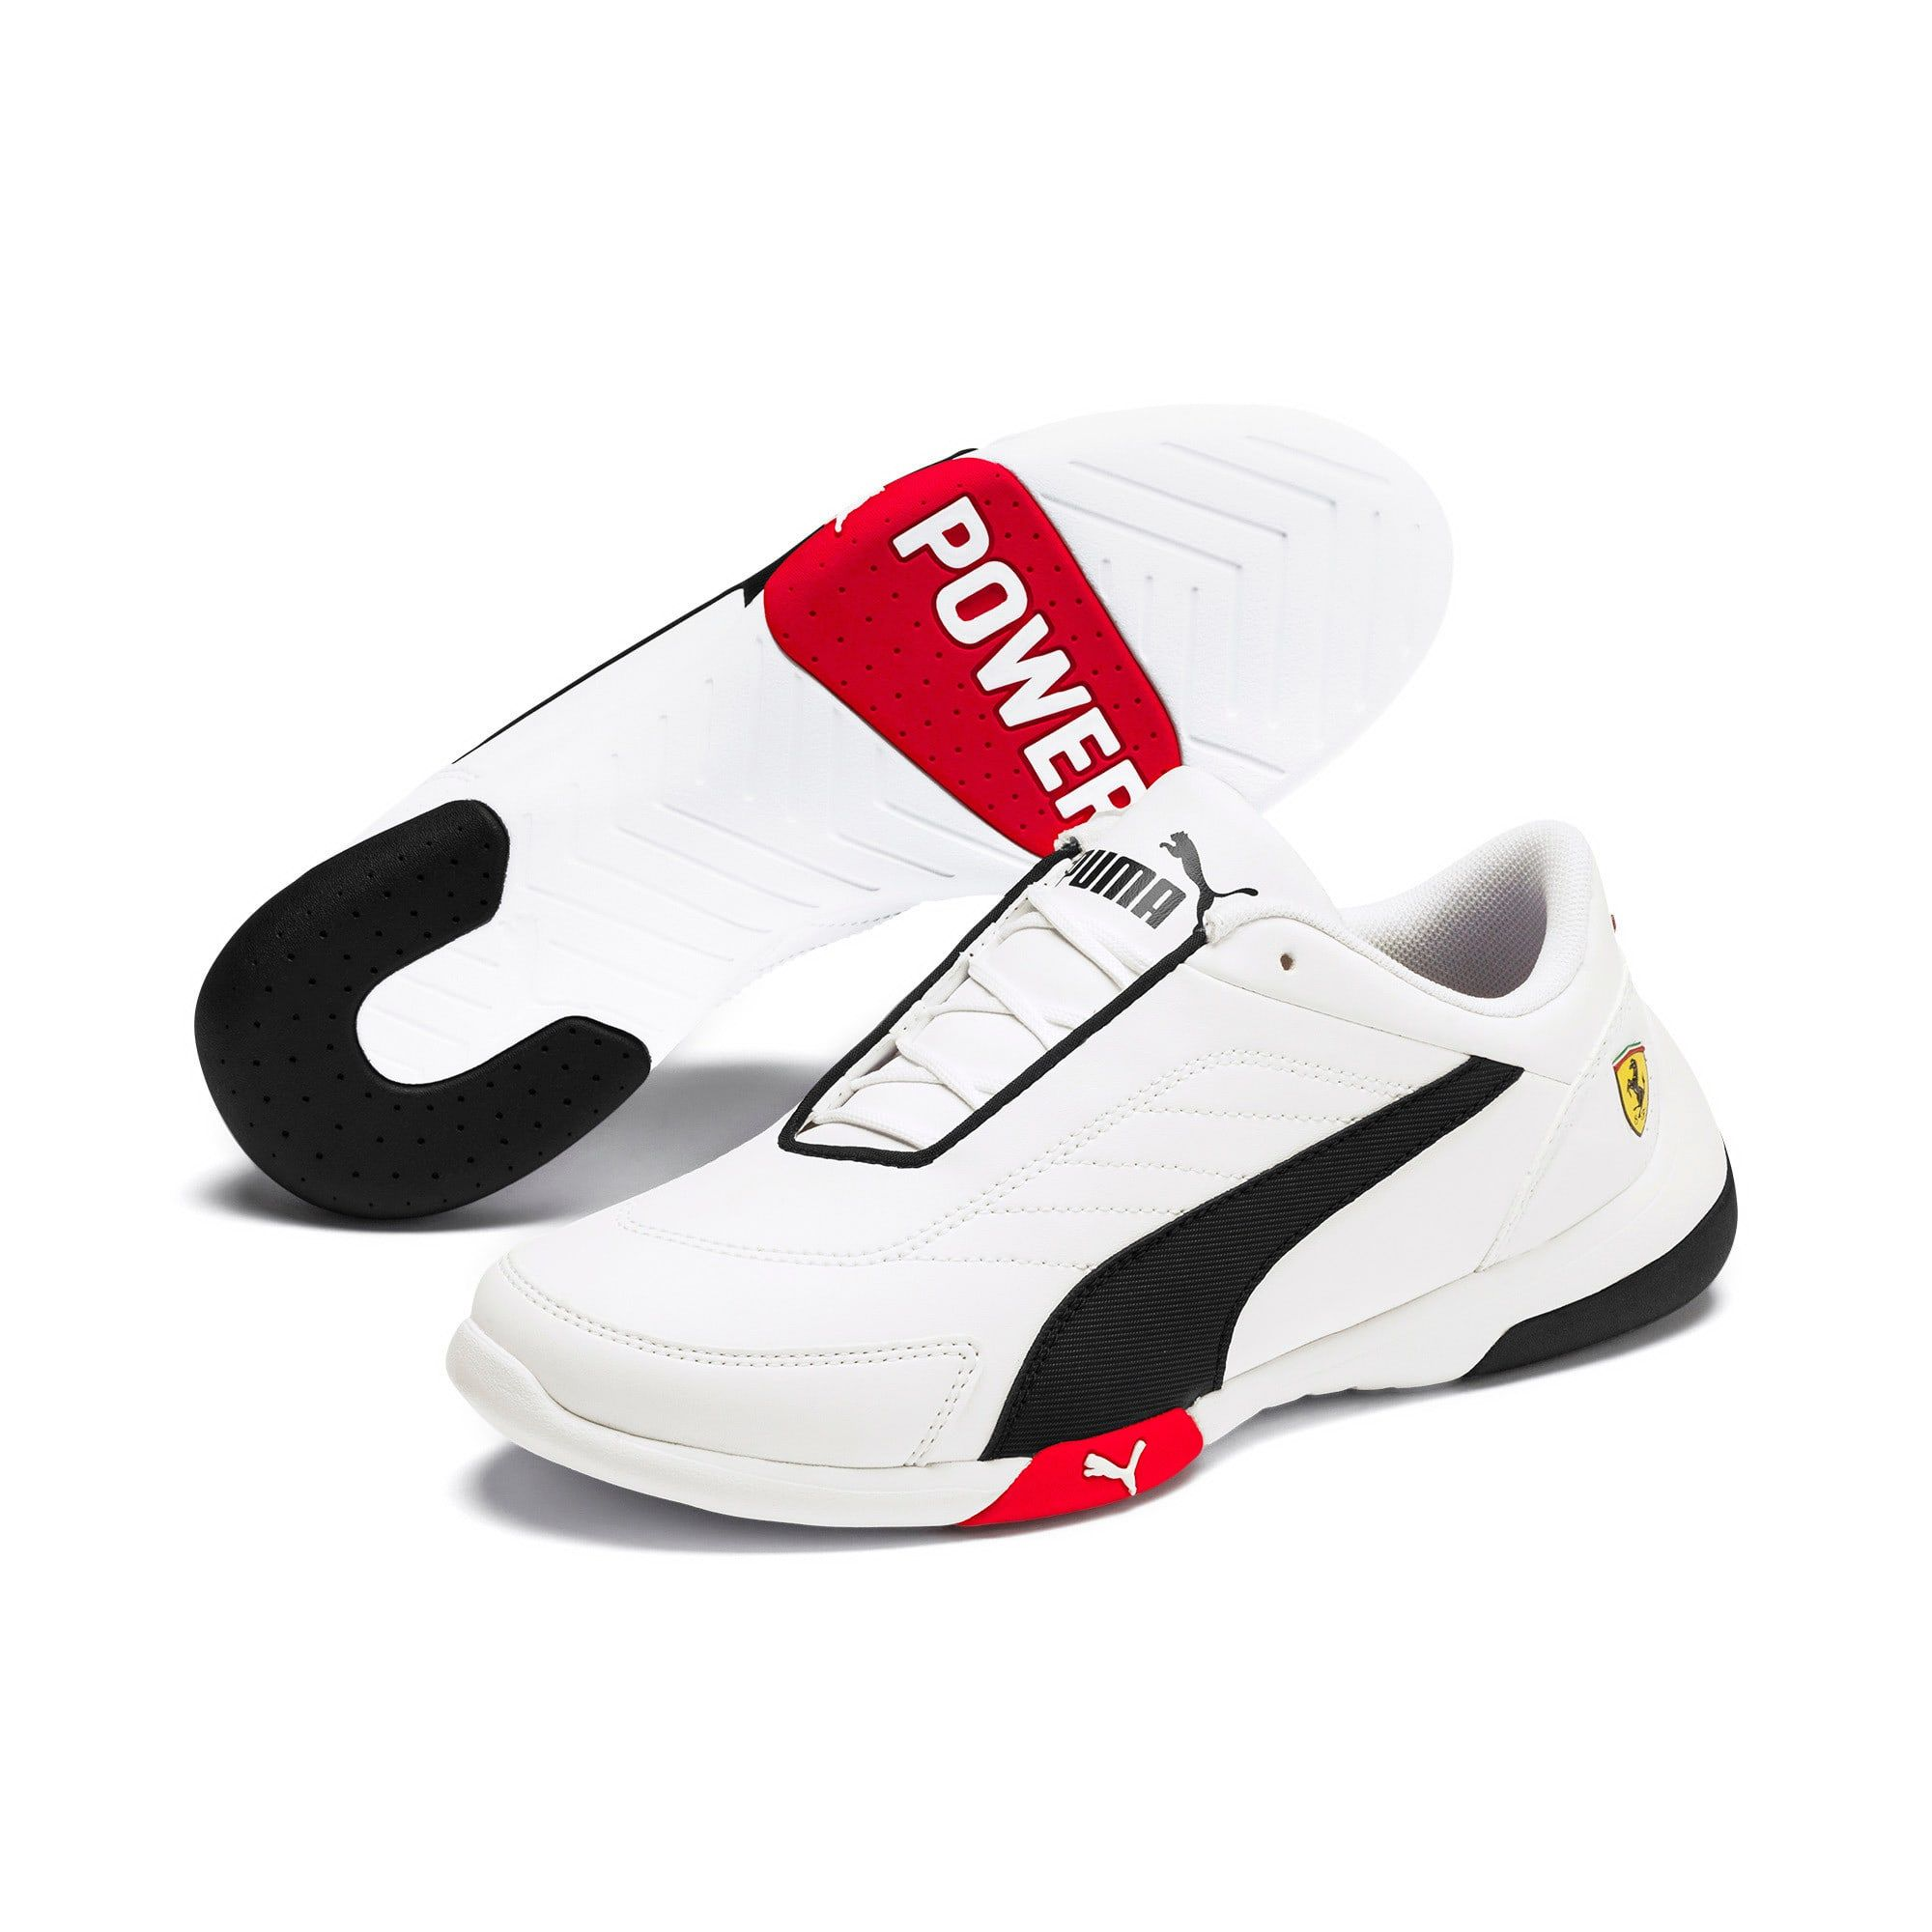 PUMA Ferrari Kart Cat III Youth Trainers in Red size 6 #newferrari